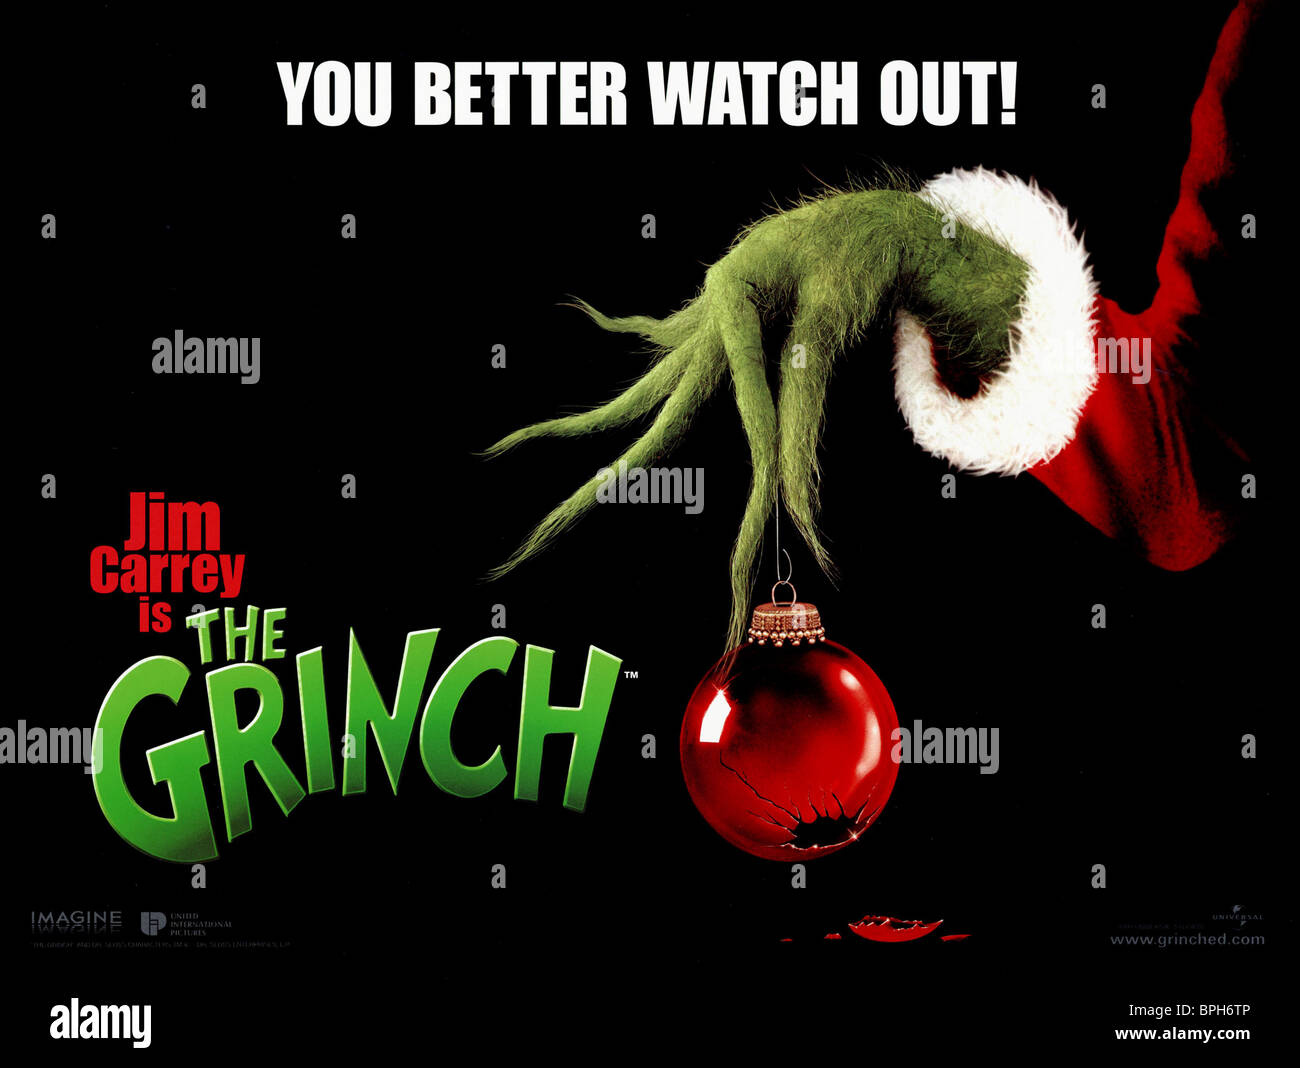 How The Grinch Stole Christmas 1966 Movie Poster.How The Grinch Stole Christmas Film Stock Photos How The